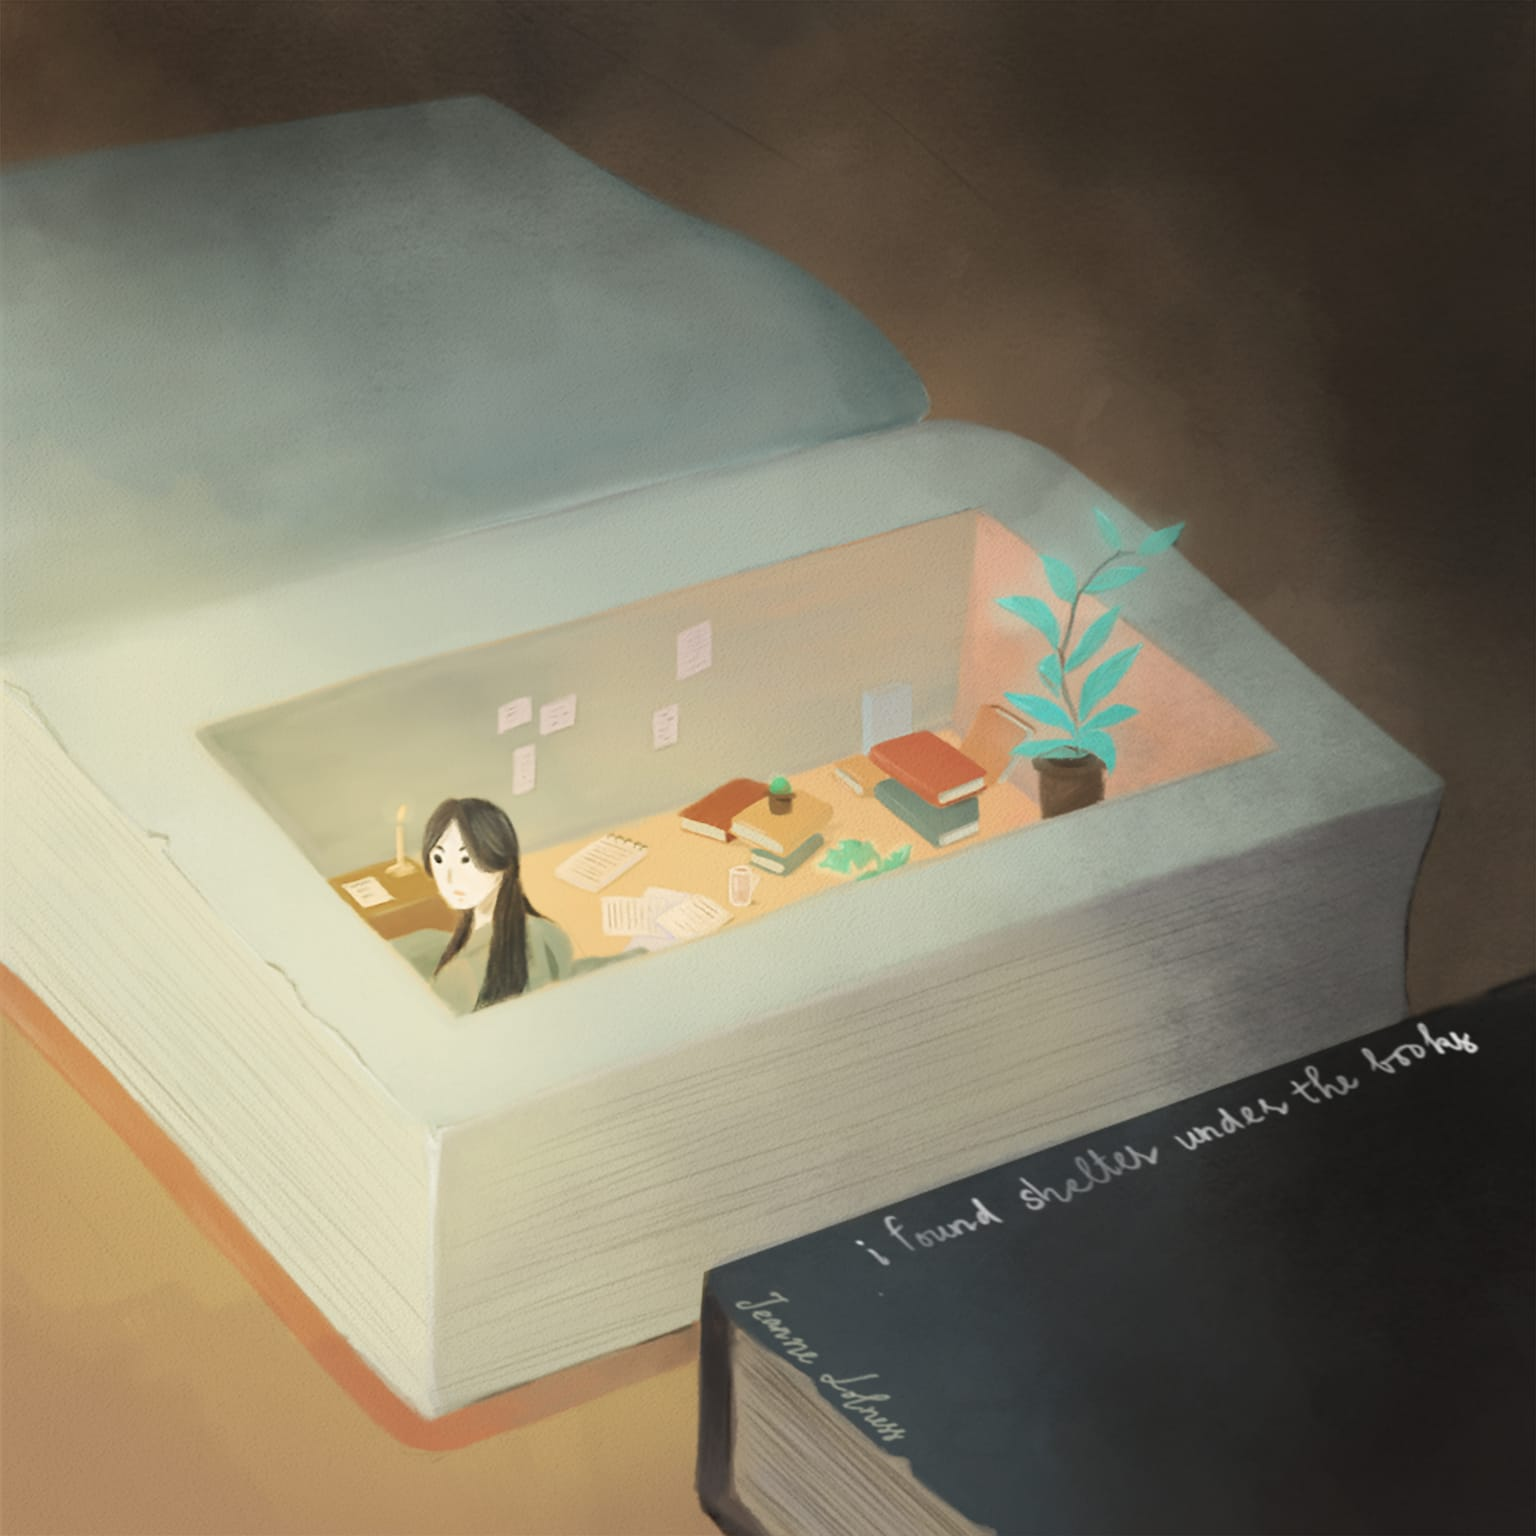 Books, Reading and Imagination Illustrations